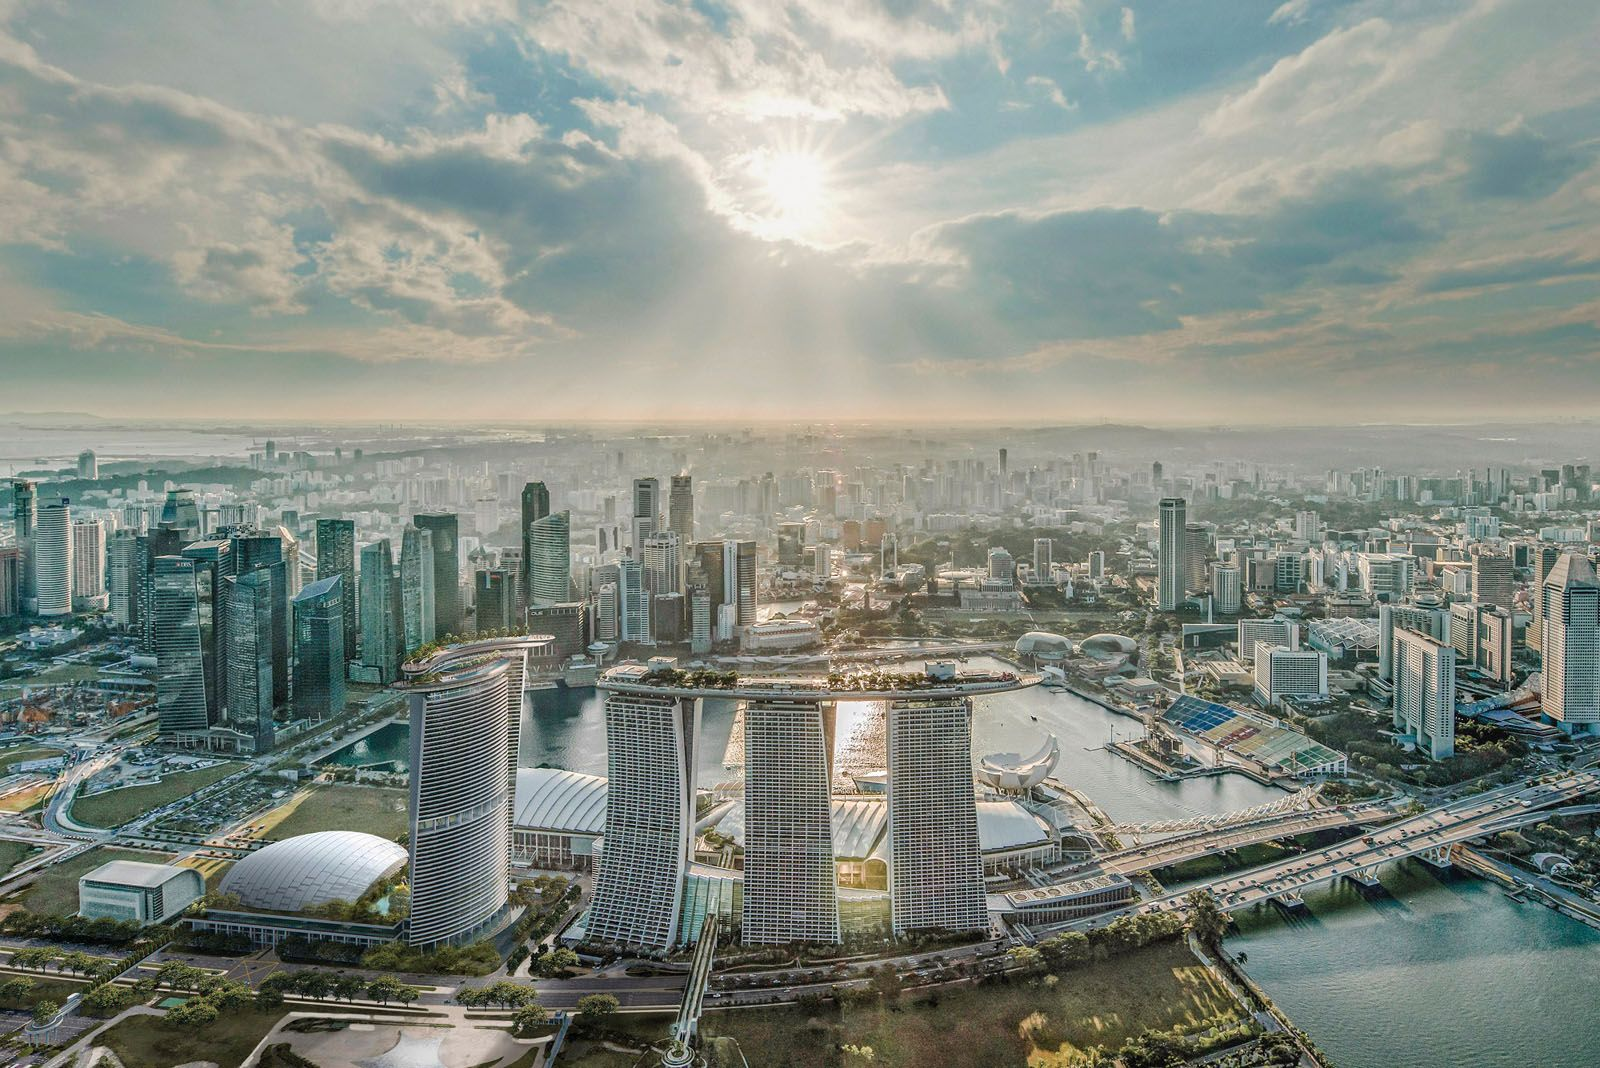 A fourth tower will soon be added to the Marina Bay Sands complex